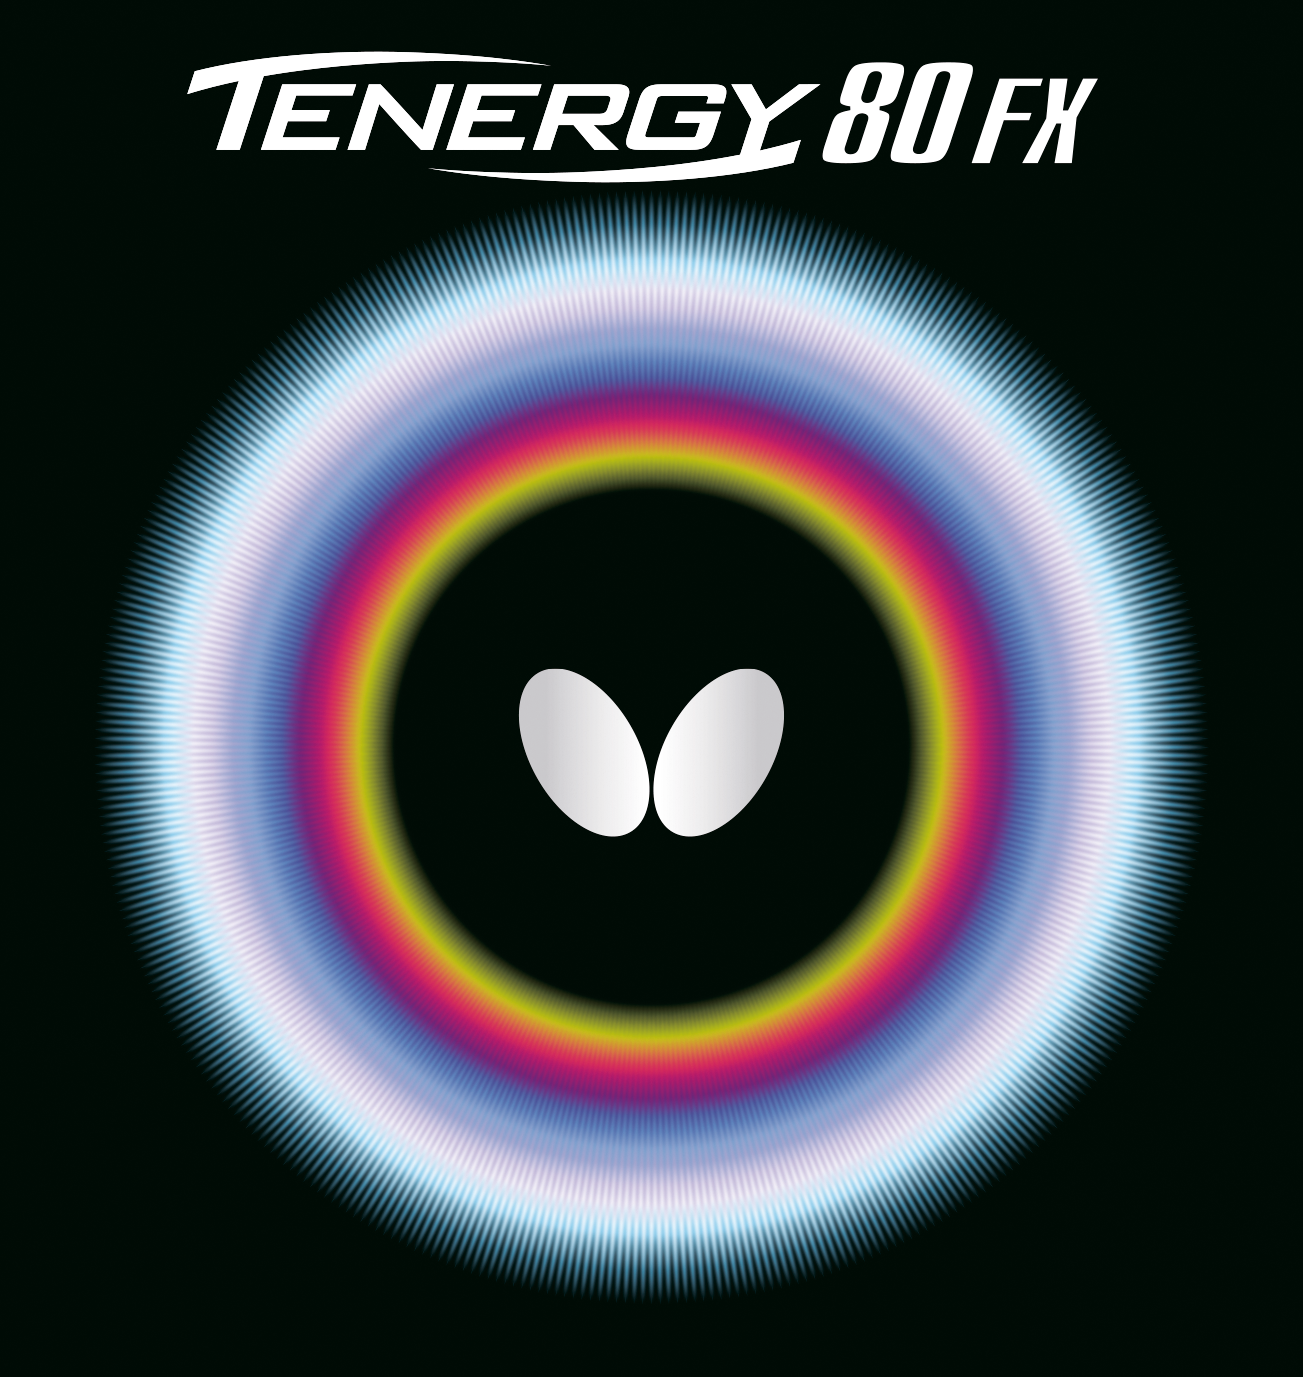 BUTTERFLY - rubber Tenergy 80 fx